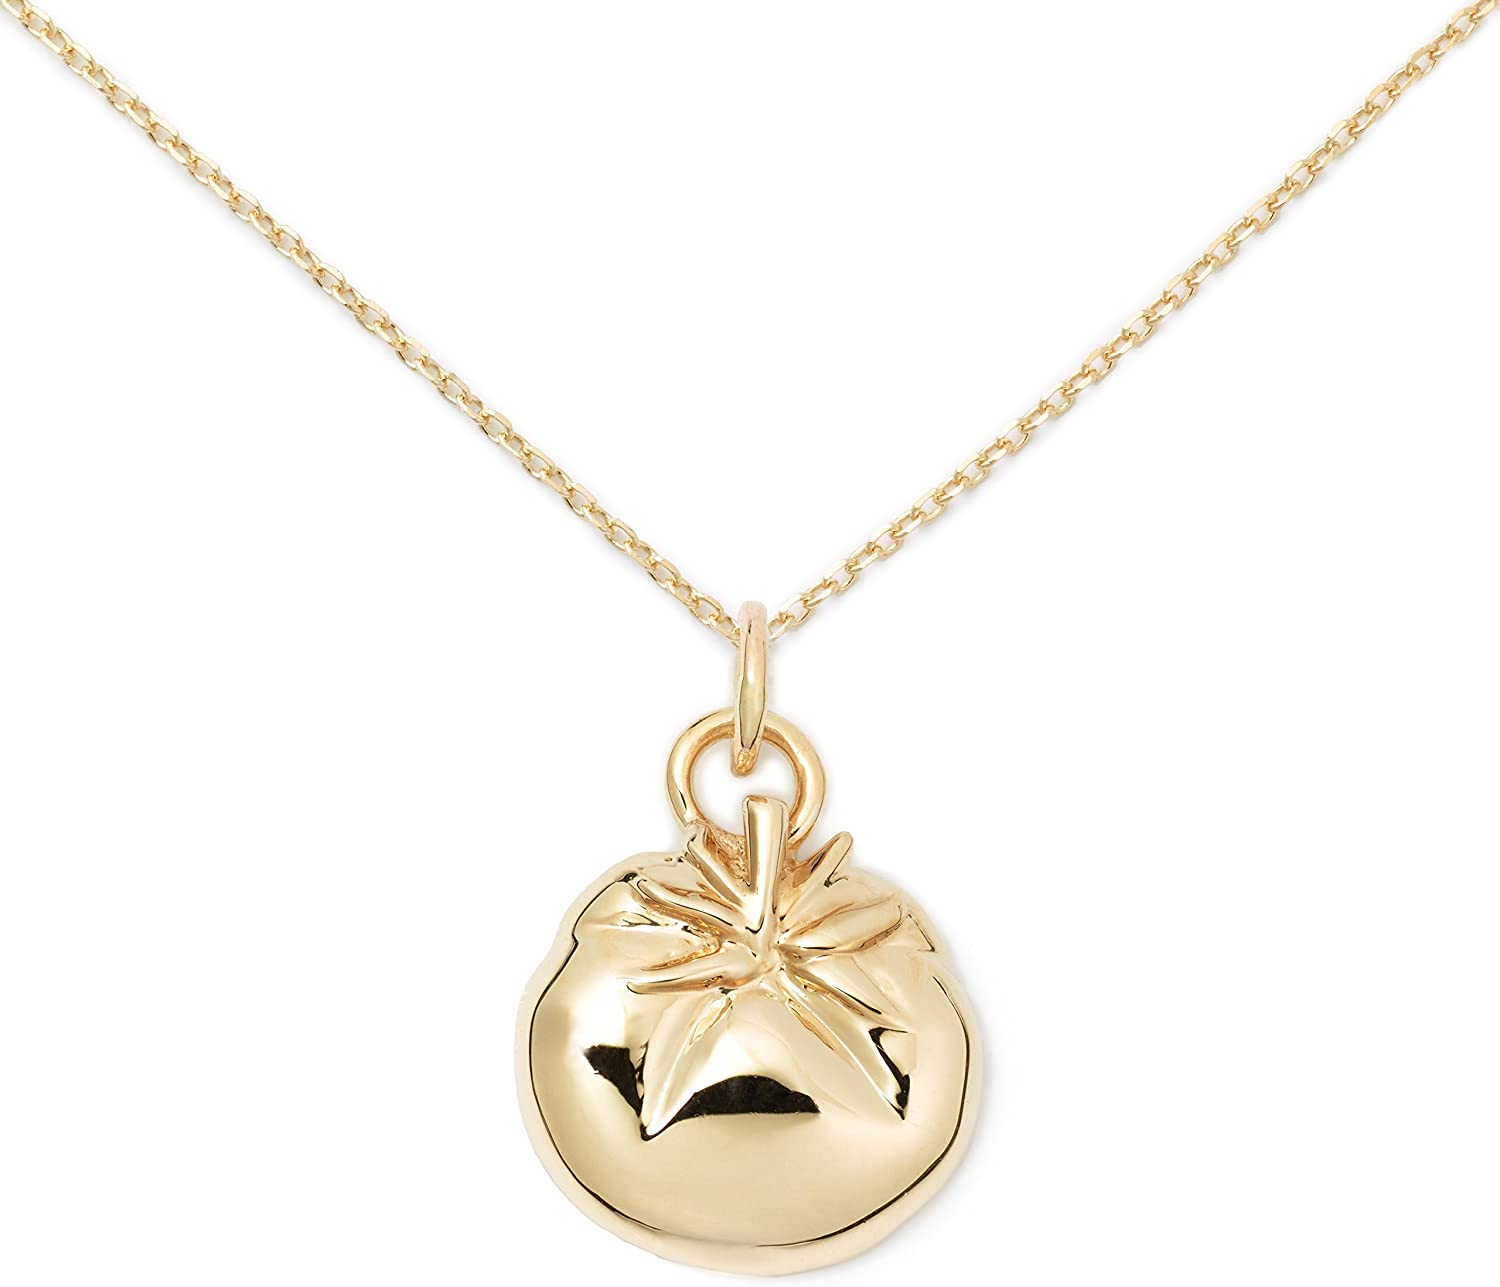 Delicacies 14K Gold Tomato Necklace, Food Jewelry for Food Lovers, Chefs, Cooks and Epicureans